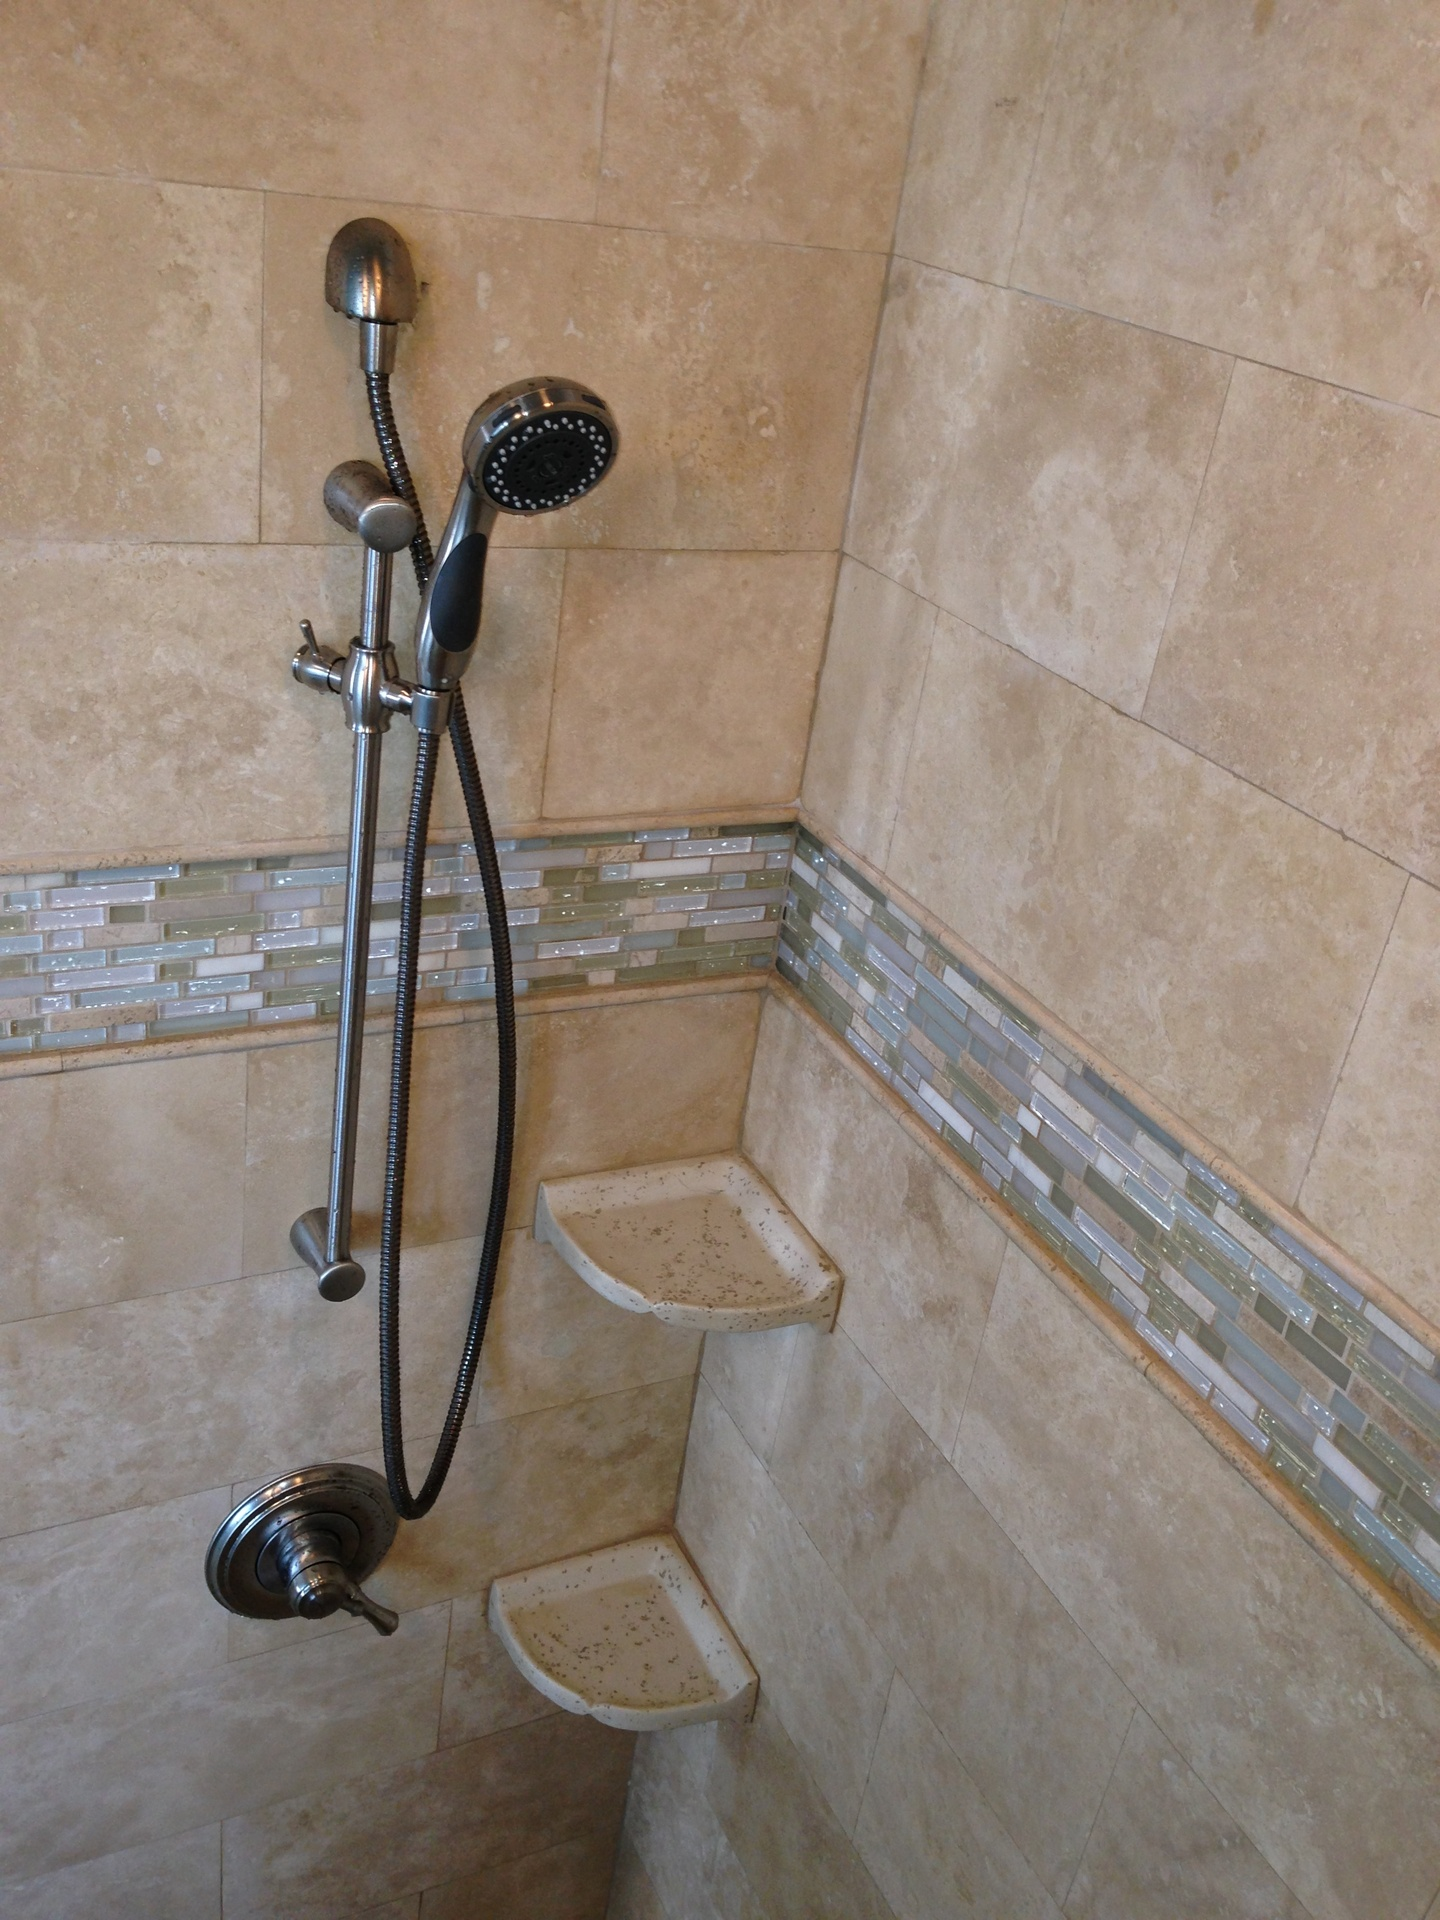 Bathroom Kitchen Remodeling Done On Time And Budget Call For 1000 Off Remodels